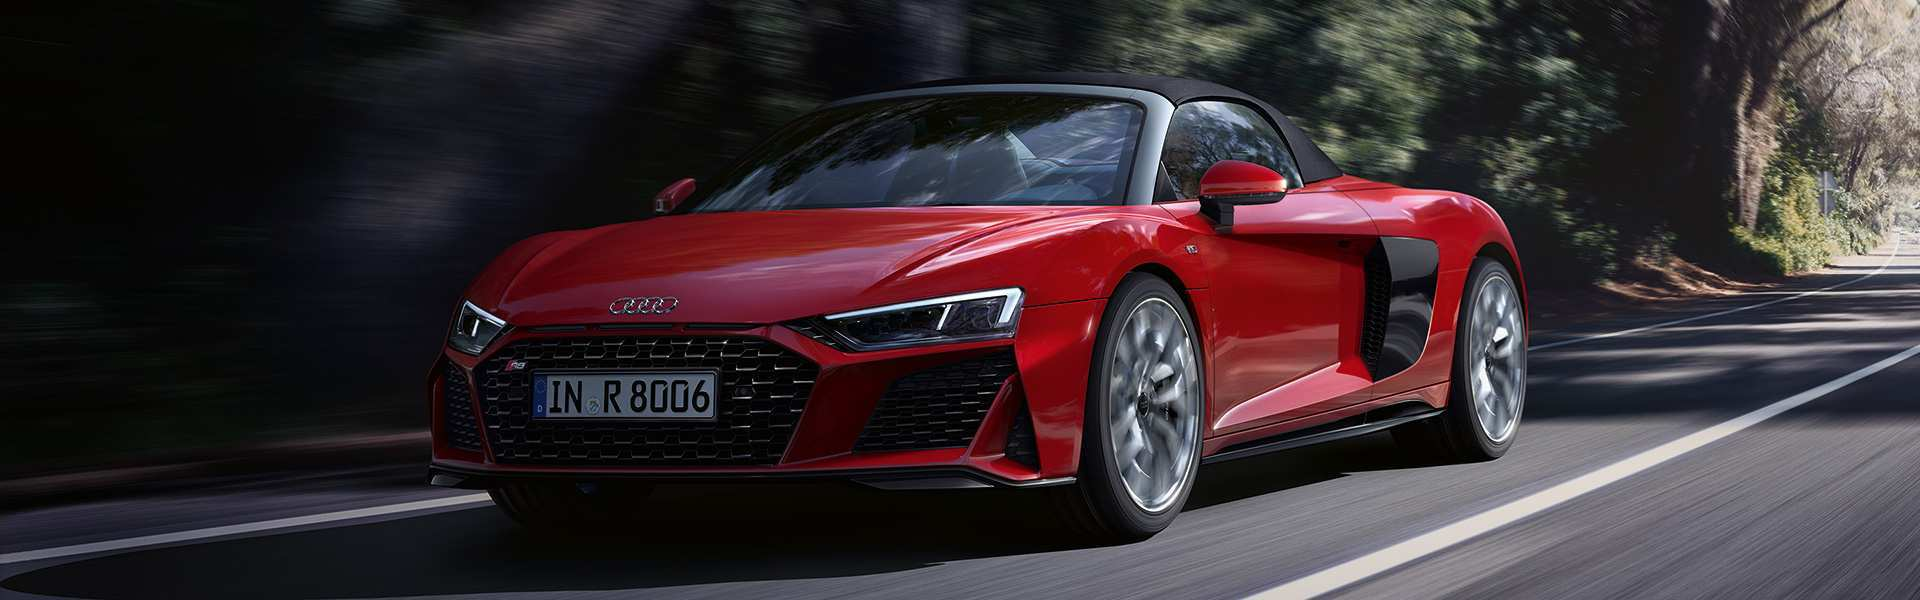 33 A 2020 Audi R8 V10 Spyder Release Date And Concept